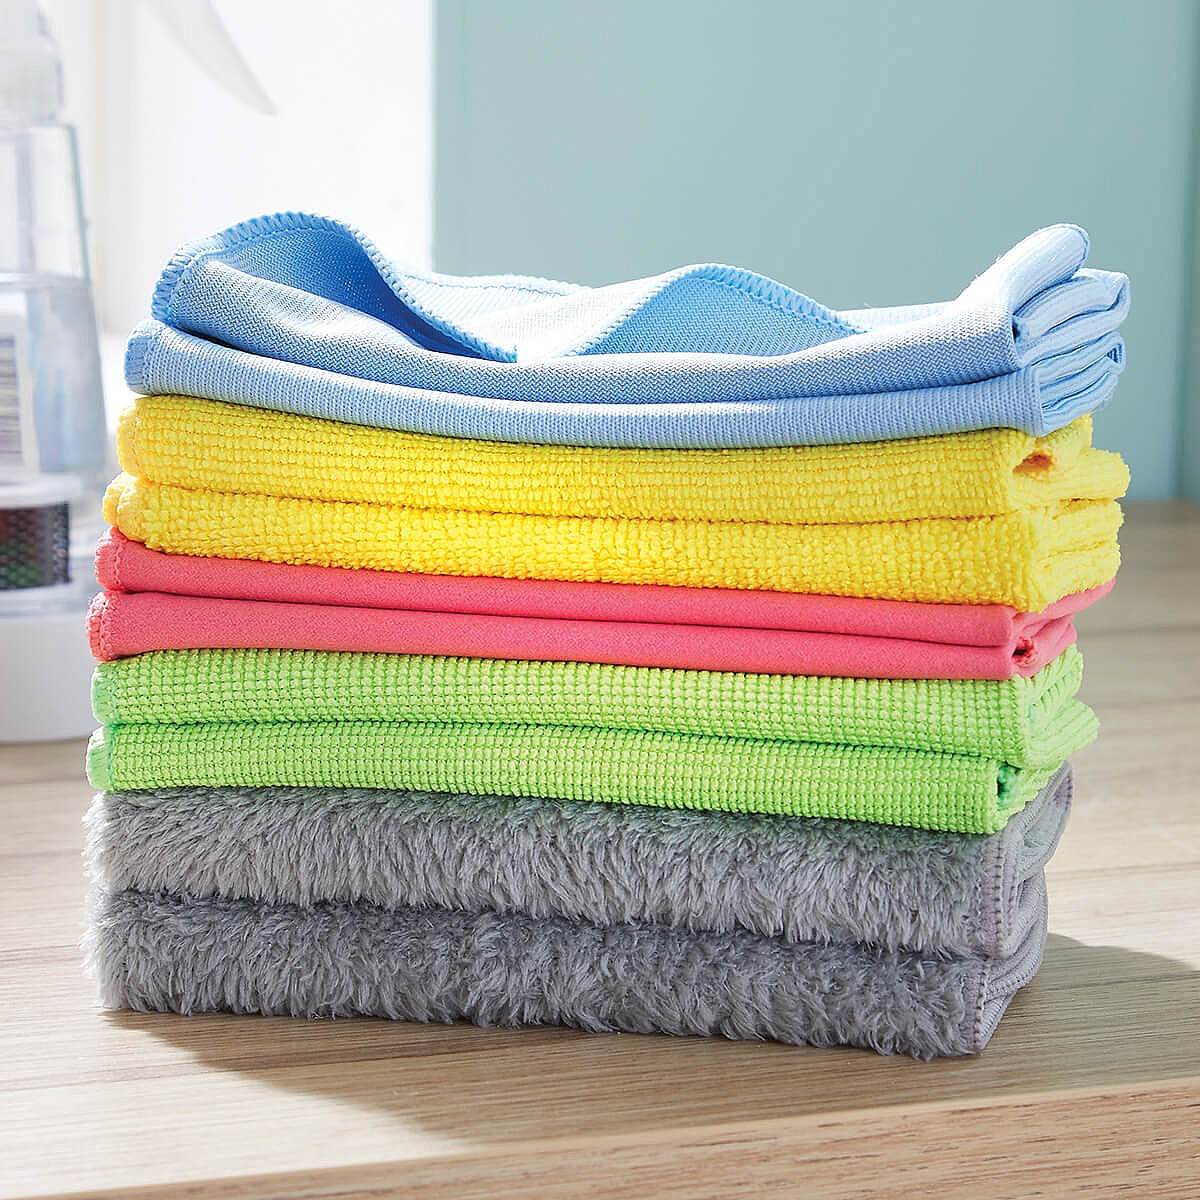 Cleaning Pack Of 10 Multi-Use Microfibre Cloths